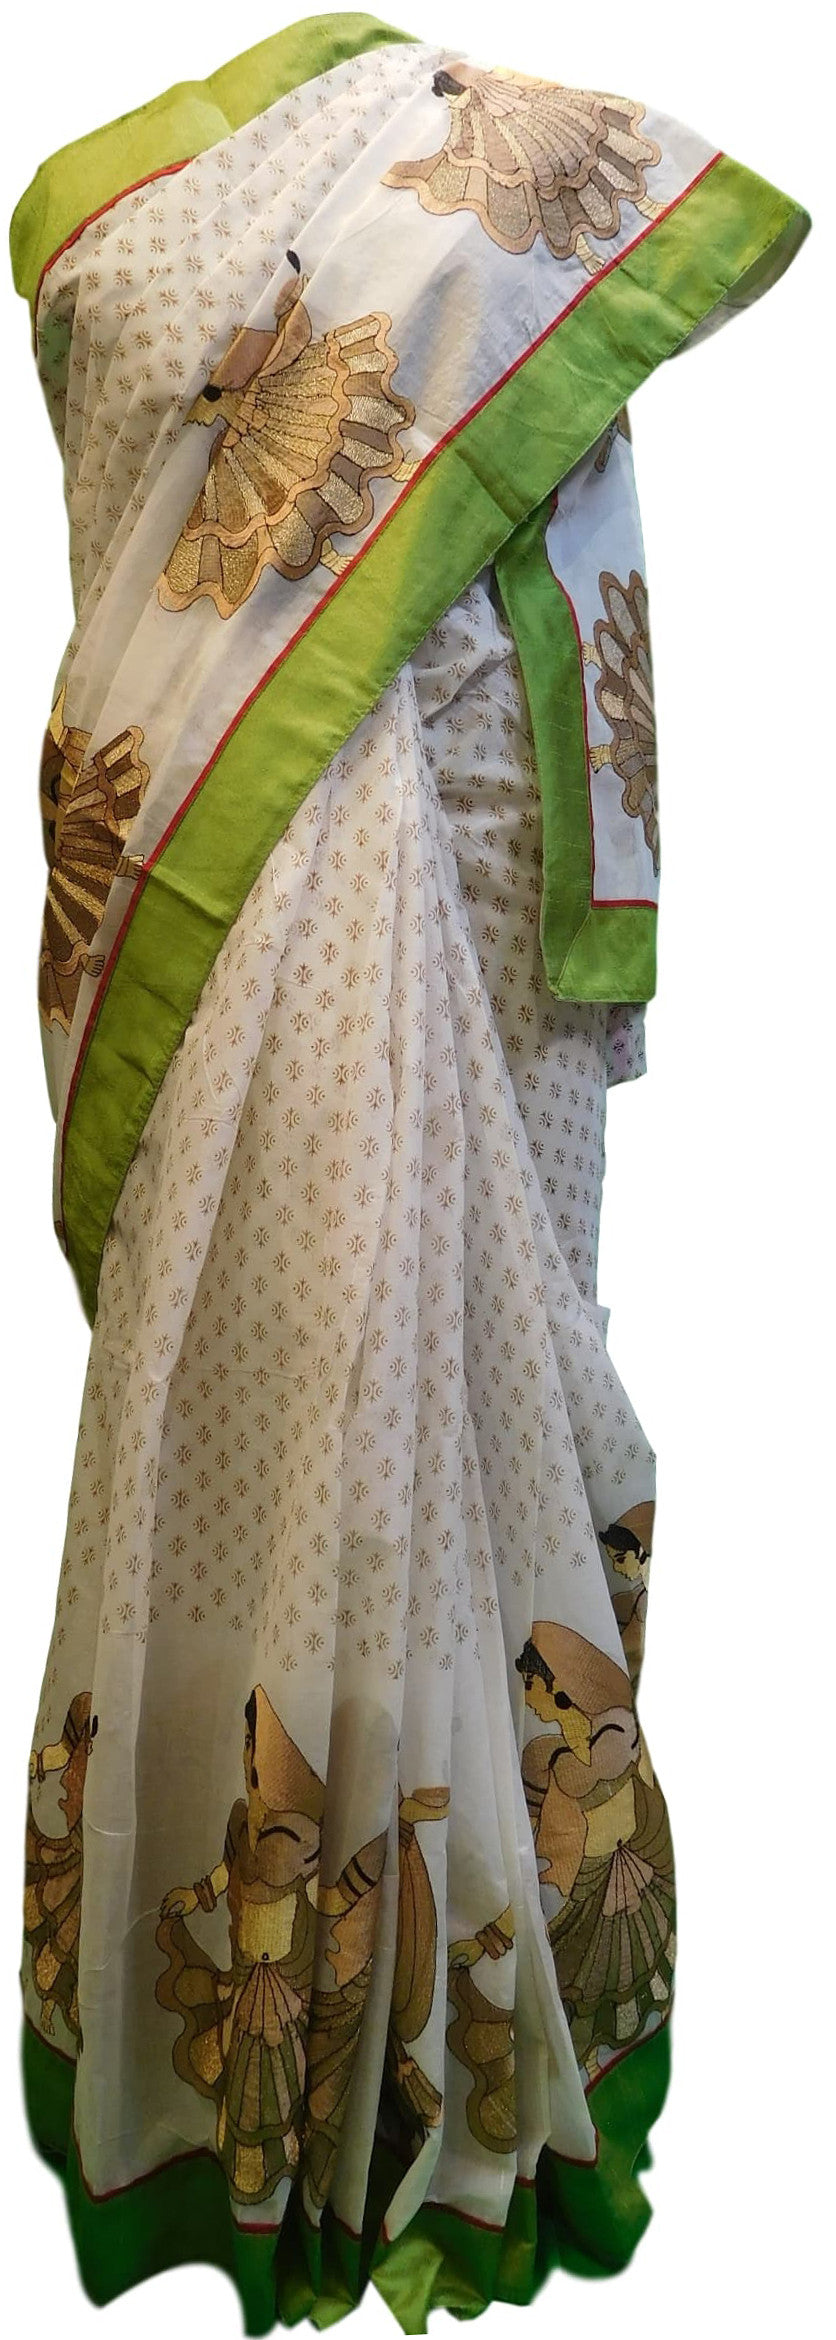 White Designer Pure Cotton Thread Embroidery Printed Sari Saree